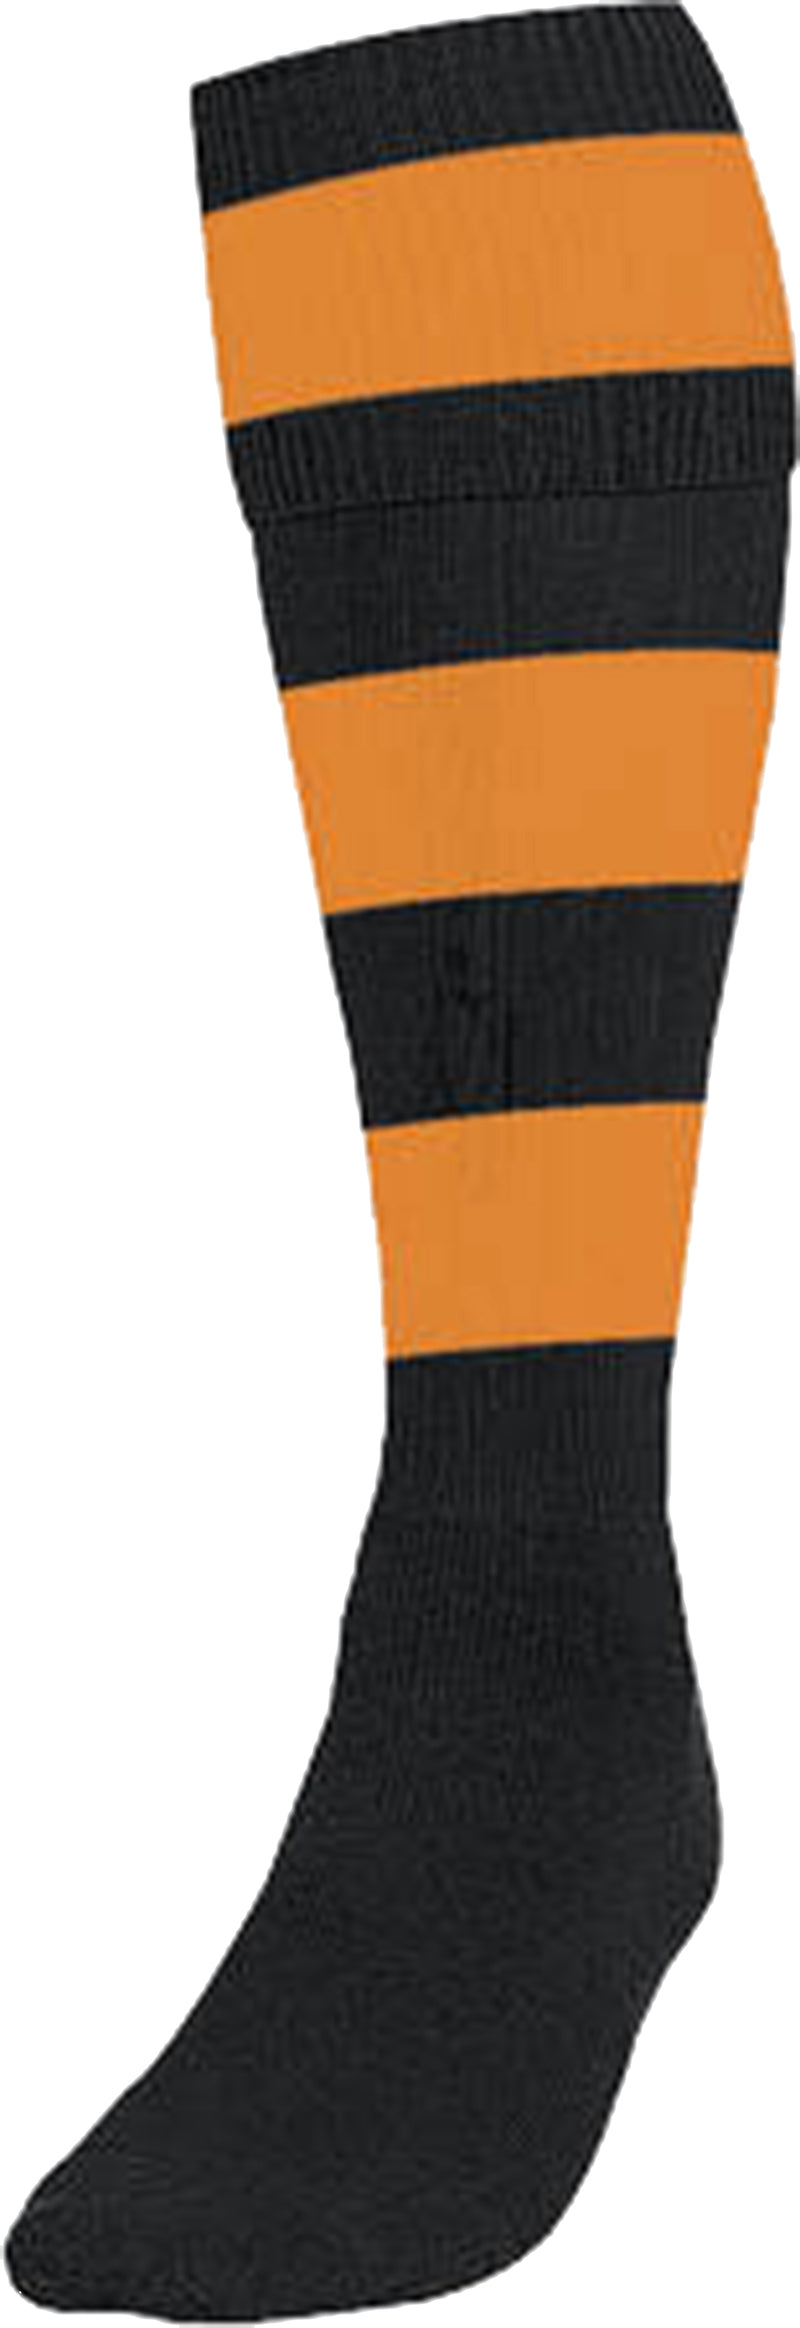 Precision Hooped Football Socks Junior Or Adult Sizes